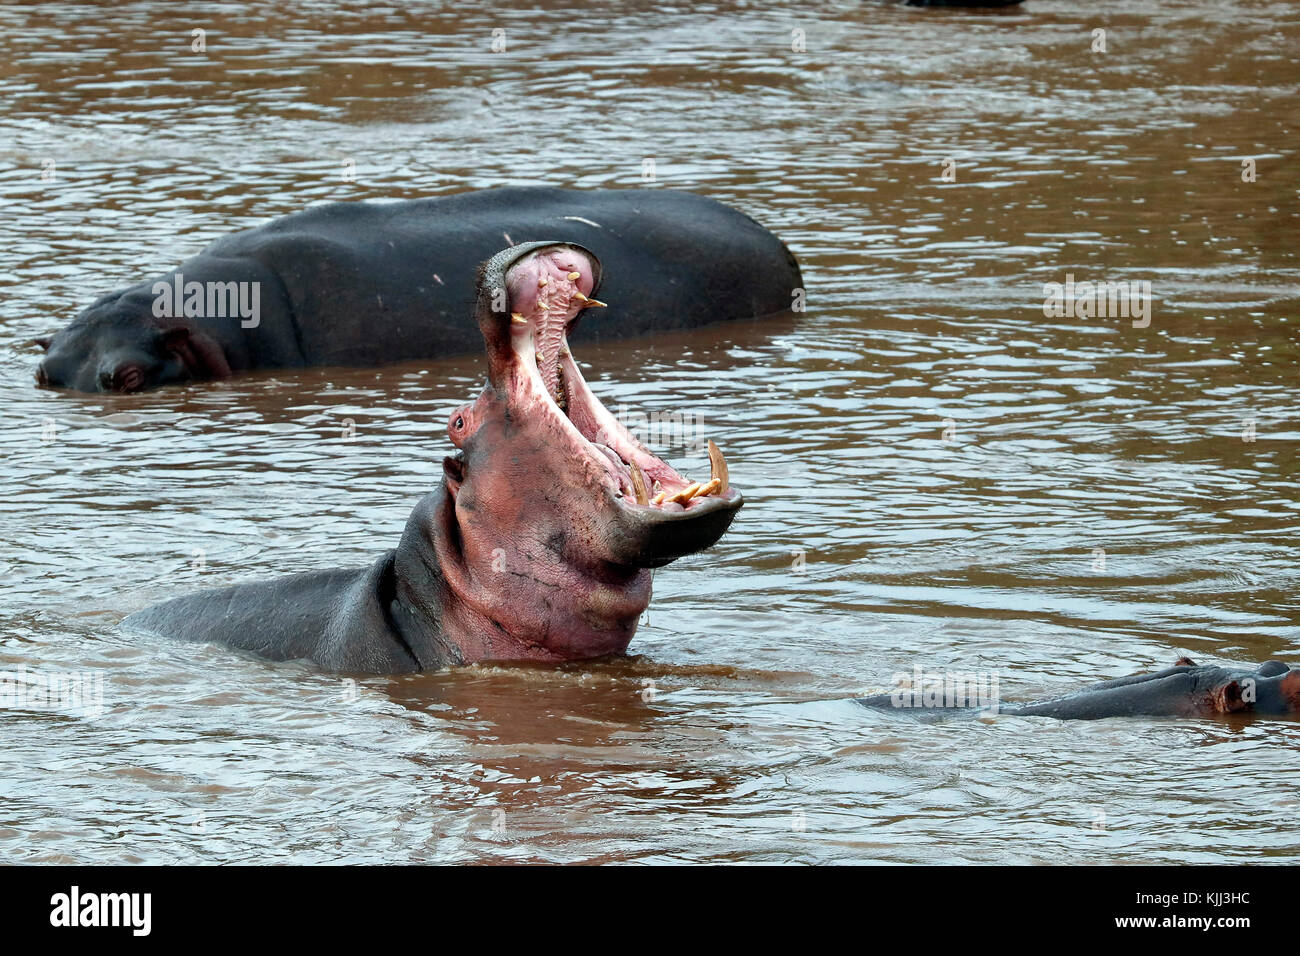 Hippopotamus (Hippopatamus amphibius)  in water with mouh wide open.  Masai Mara game reserve. Kenya. - Stock Image